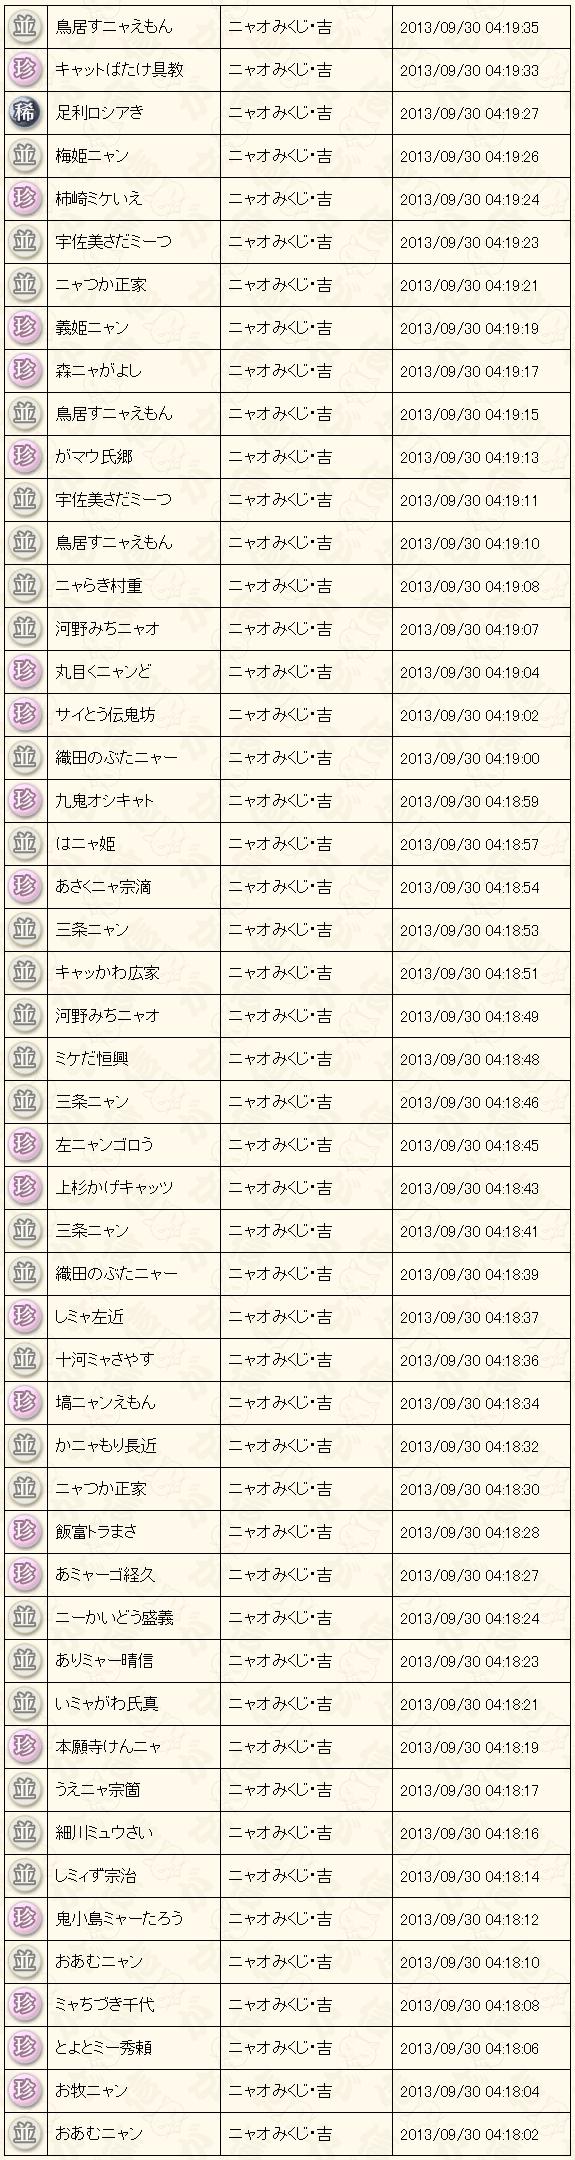 20130930042126946.png